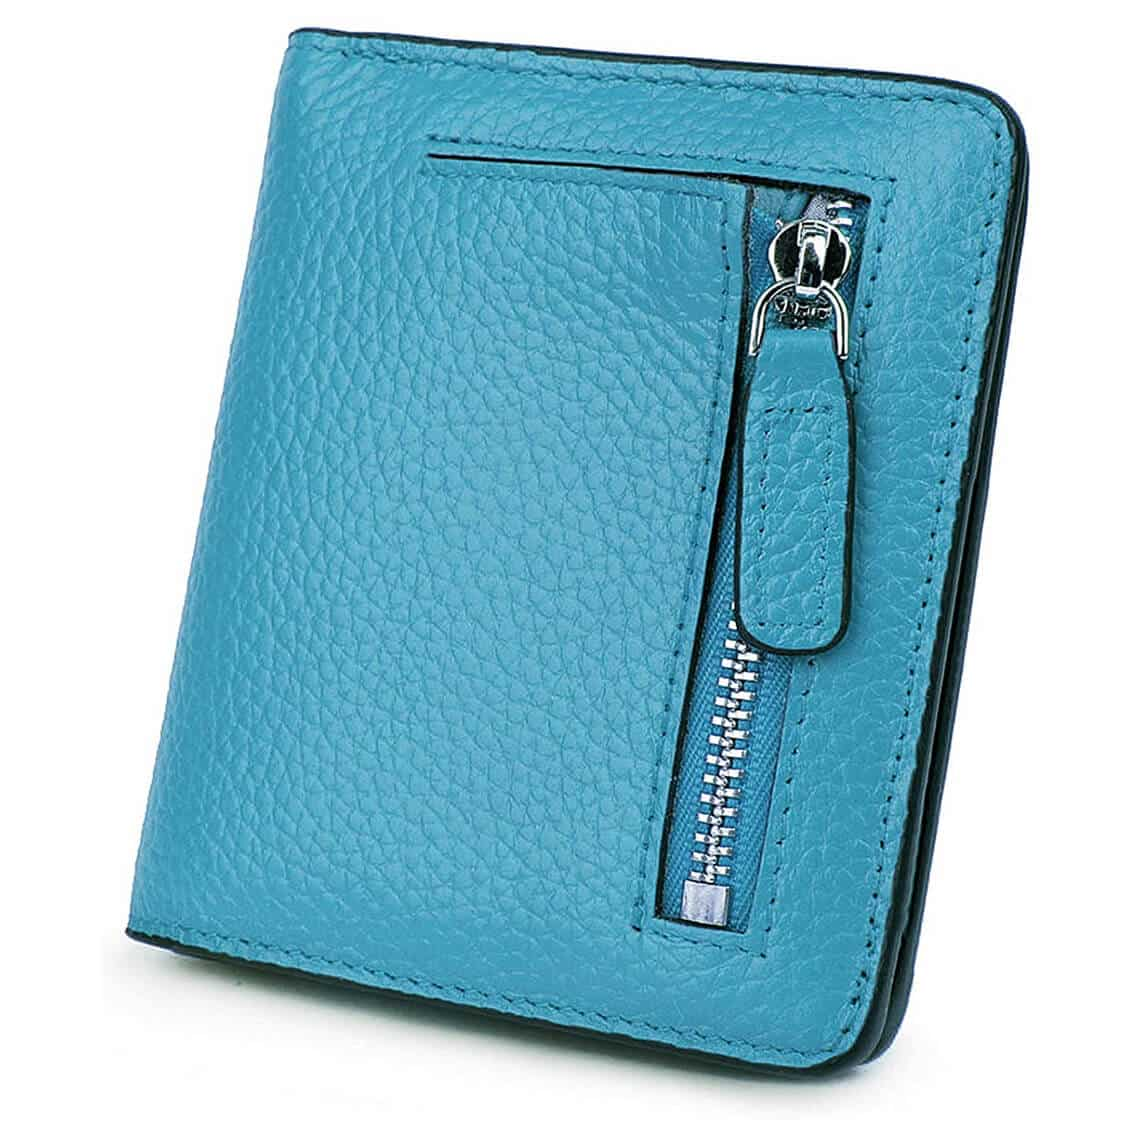 AINIMOER Small Leather Wallet for Women